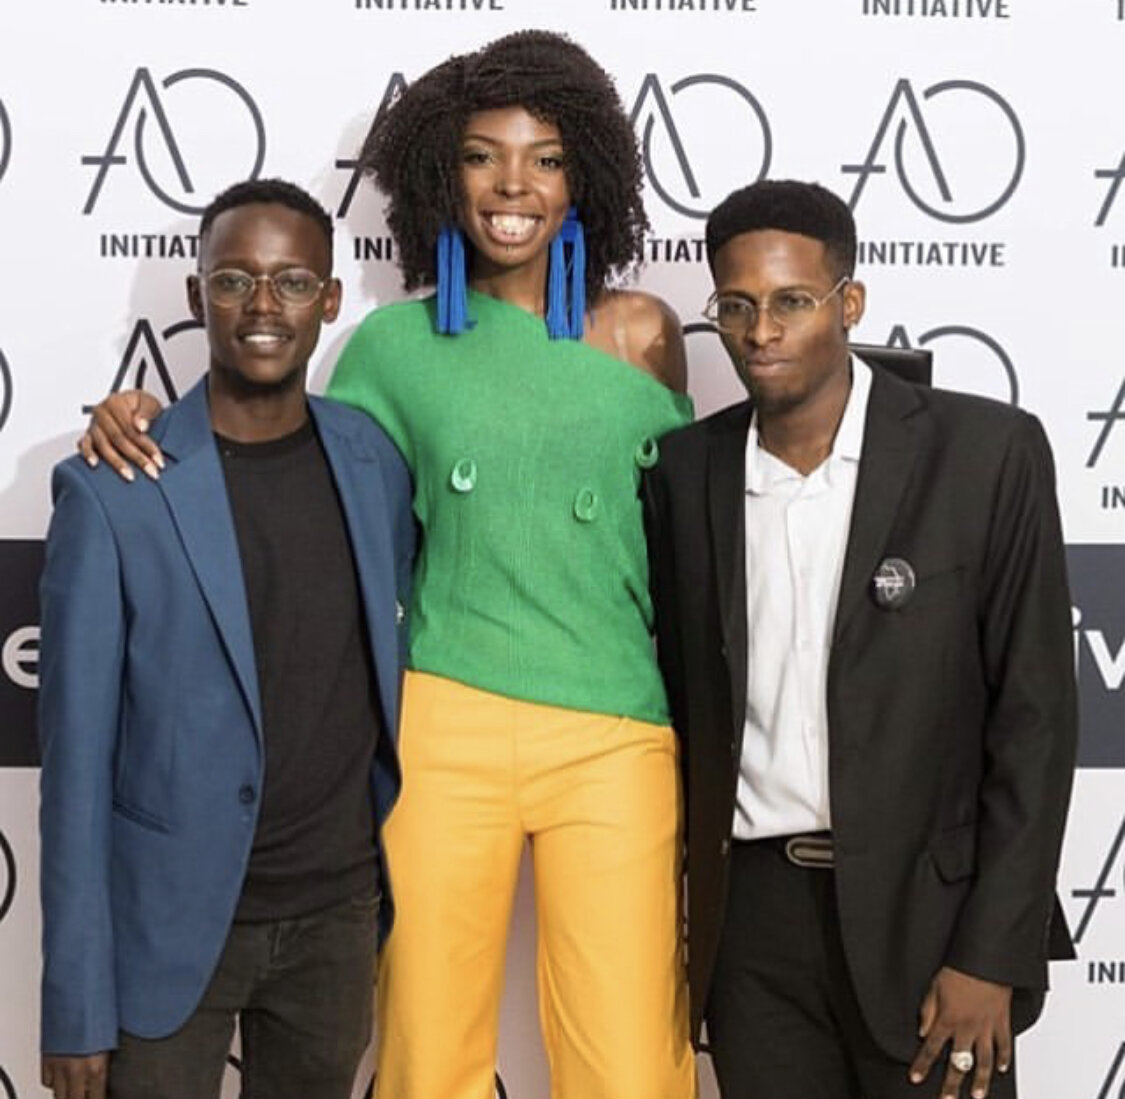 IMAGE OF ORINAH AND EVANS WITH ADELLE ONYANGO